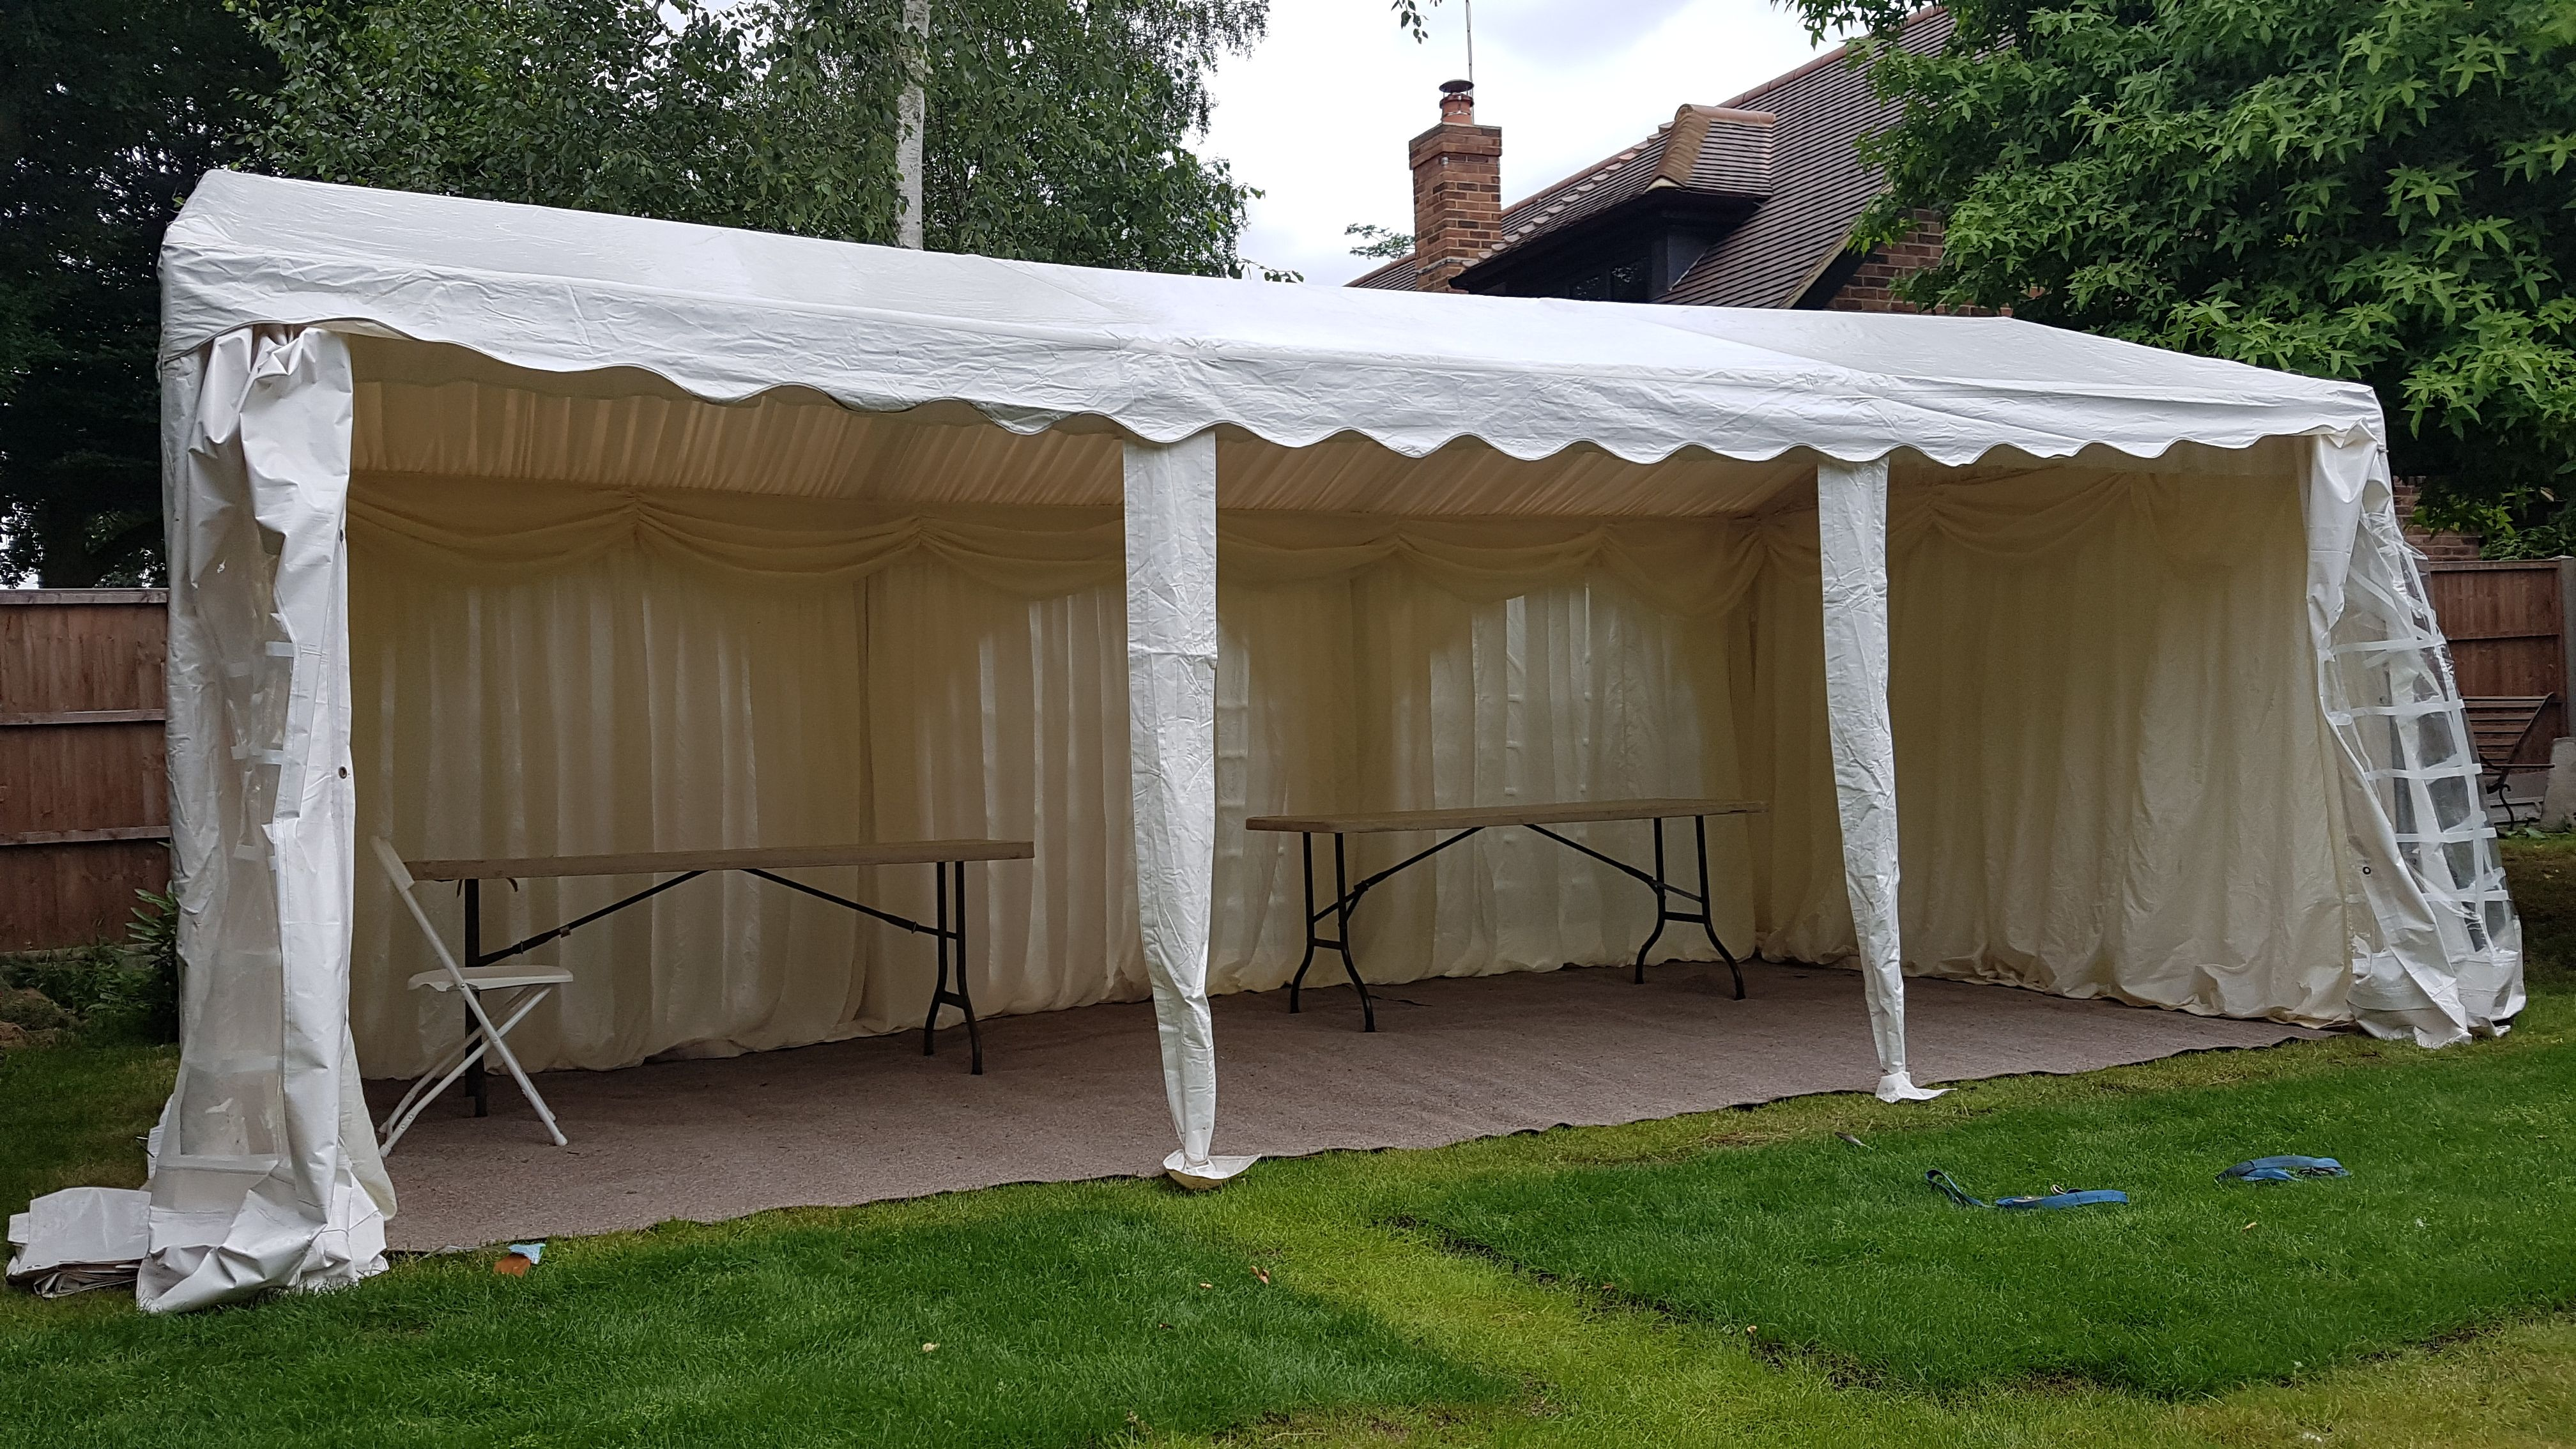 For Sale 3m Wide By 6m Long Dancover Pvc Marquee 150 With Images